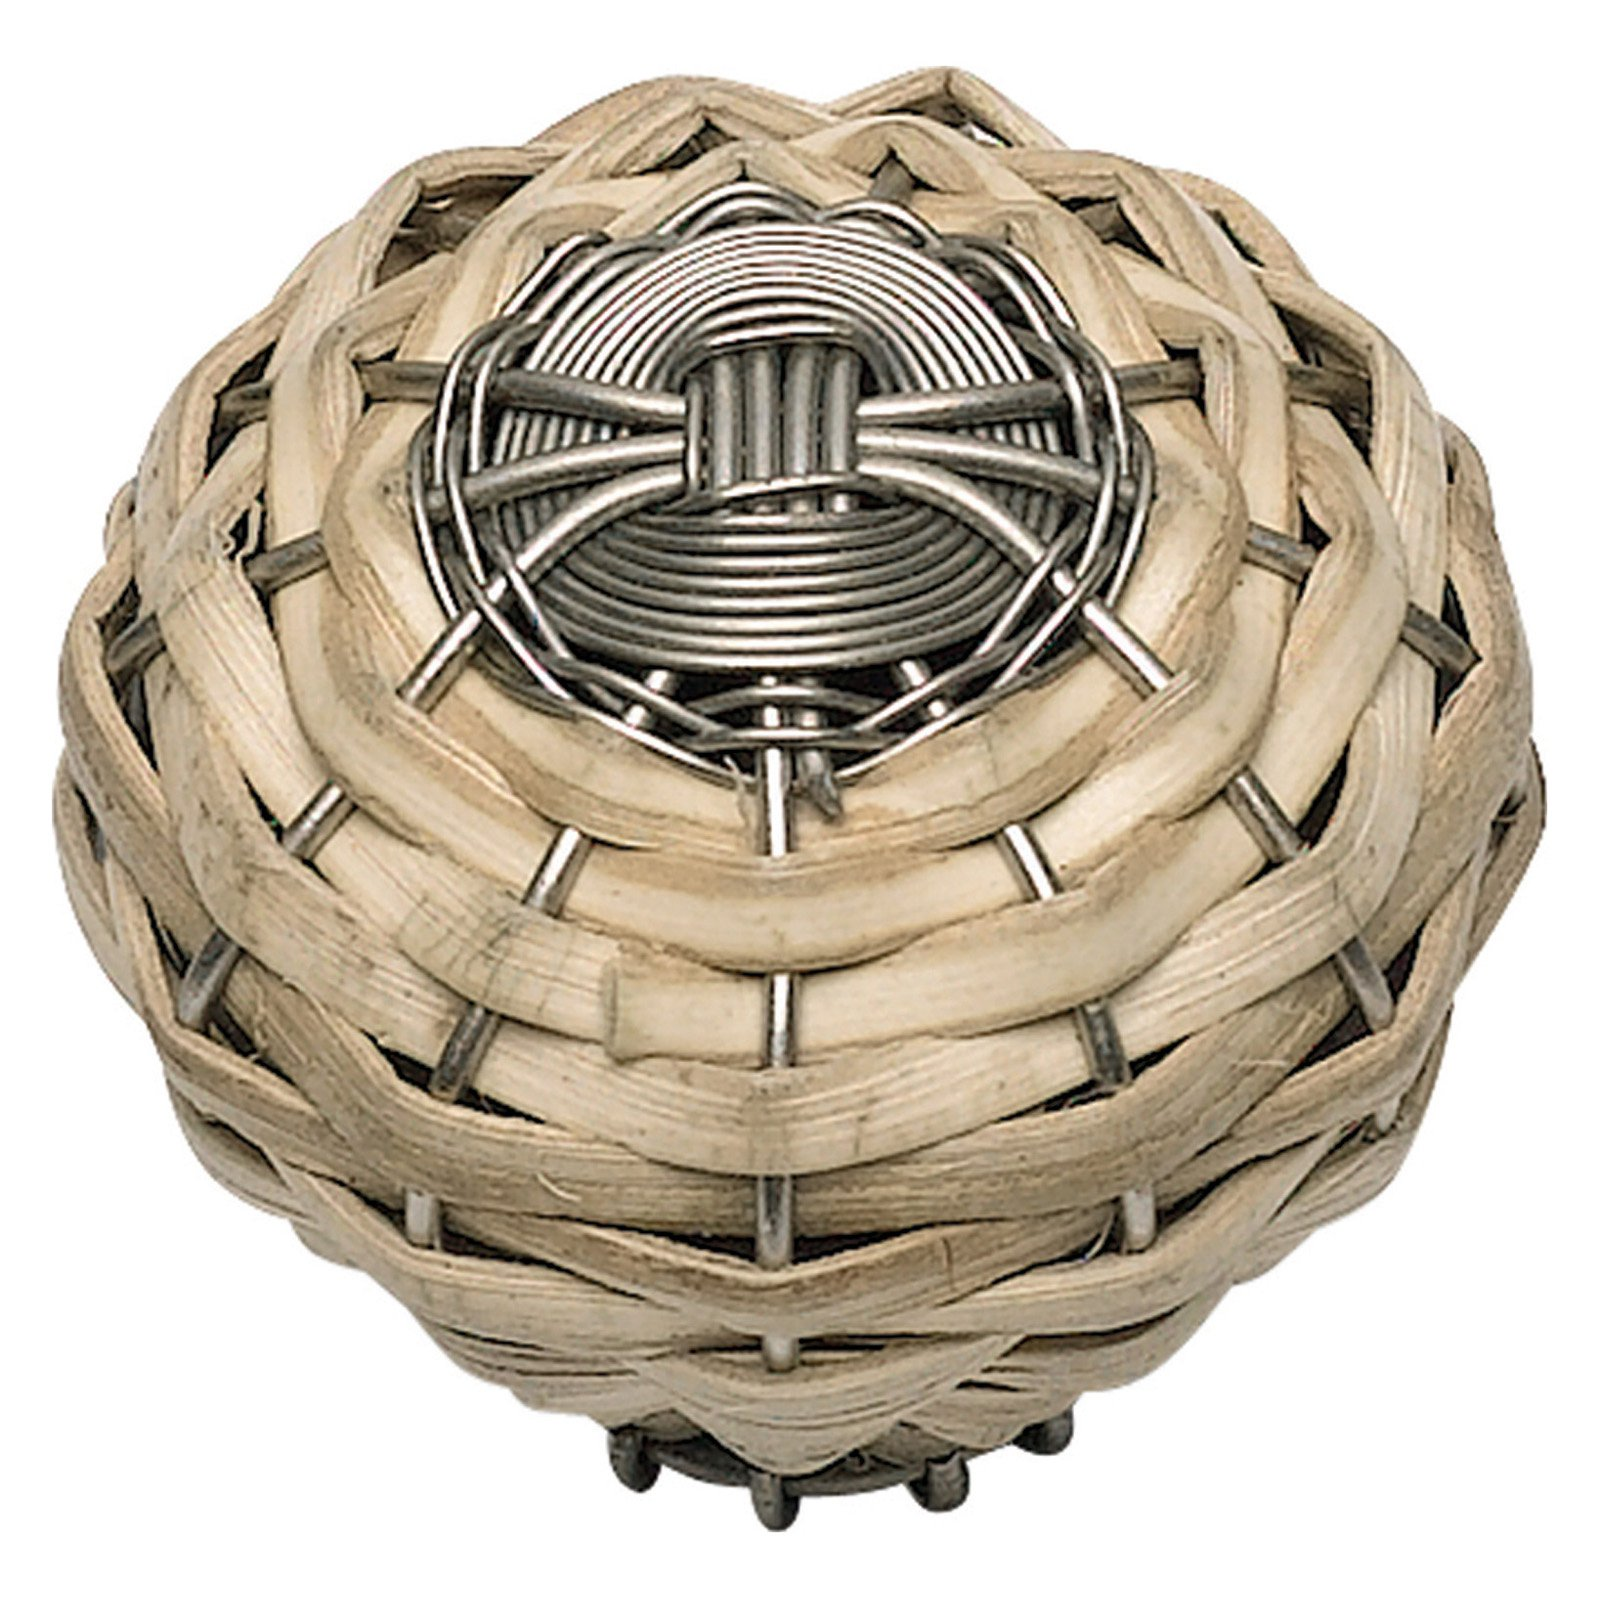 Hamptons Collection 1-1/2 in. Bamboo And Brushed Nickel Cabinet Knob